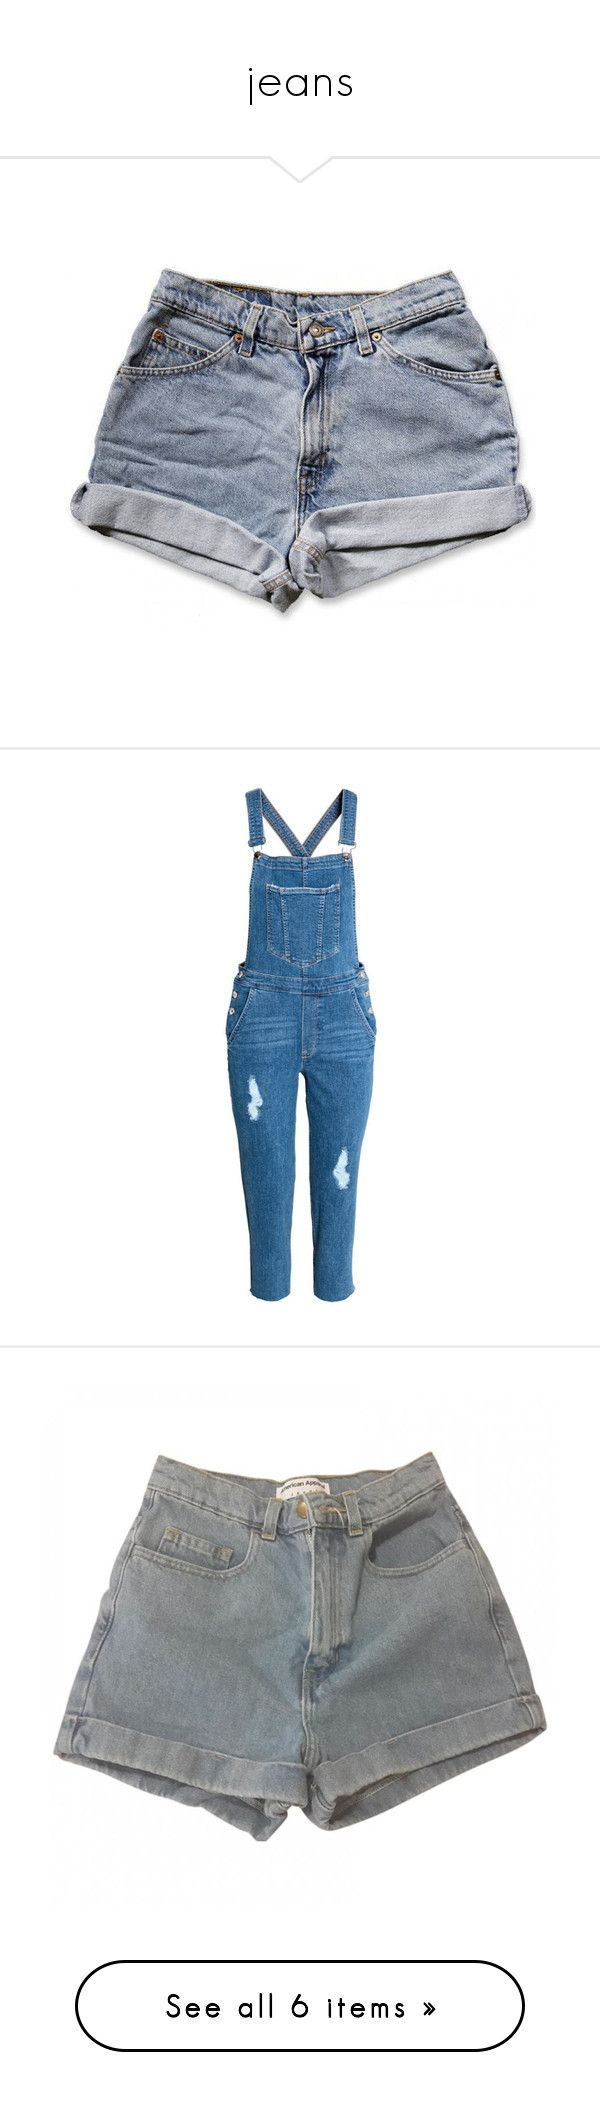 """""""jeans"""" by badgrlfordaddy ❤ liked on Polyvore featuring shorts, bottoms, jeans, silver, women's clothing, vintage jean shorts, cutoff denim shorts, cuffed denim shorts, cutoff jean shorts and cutoff shorts"""